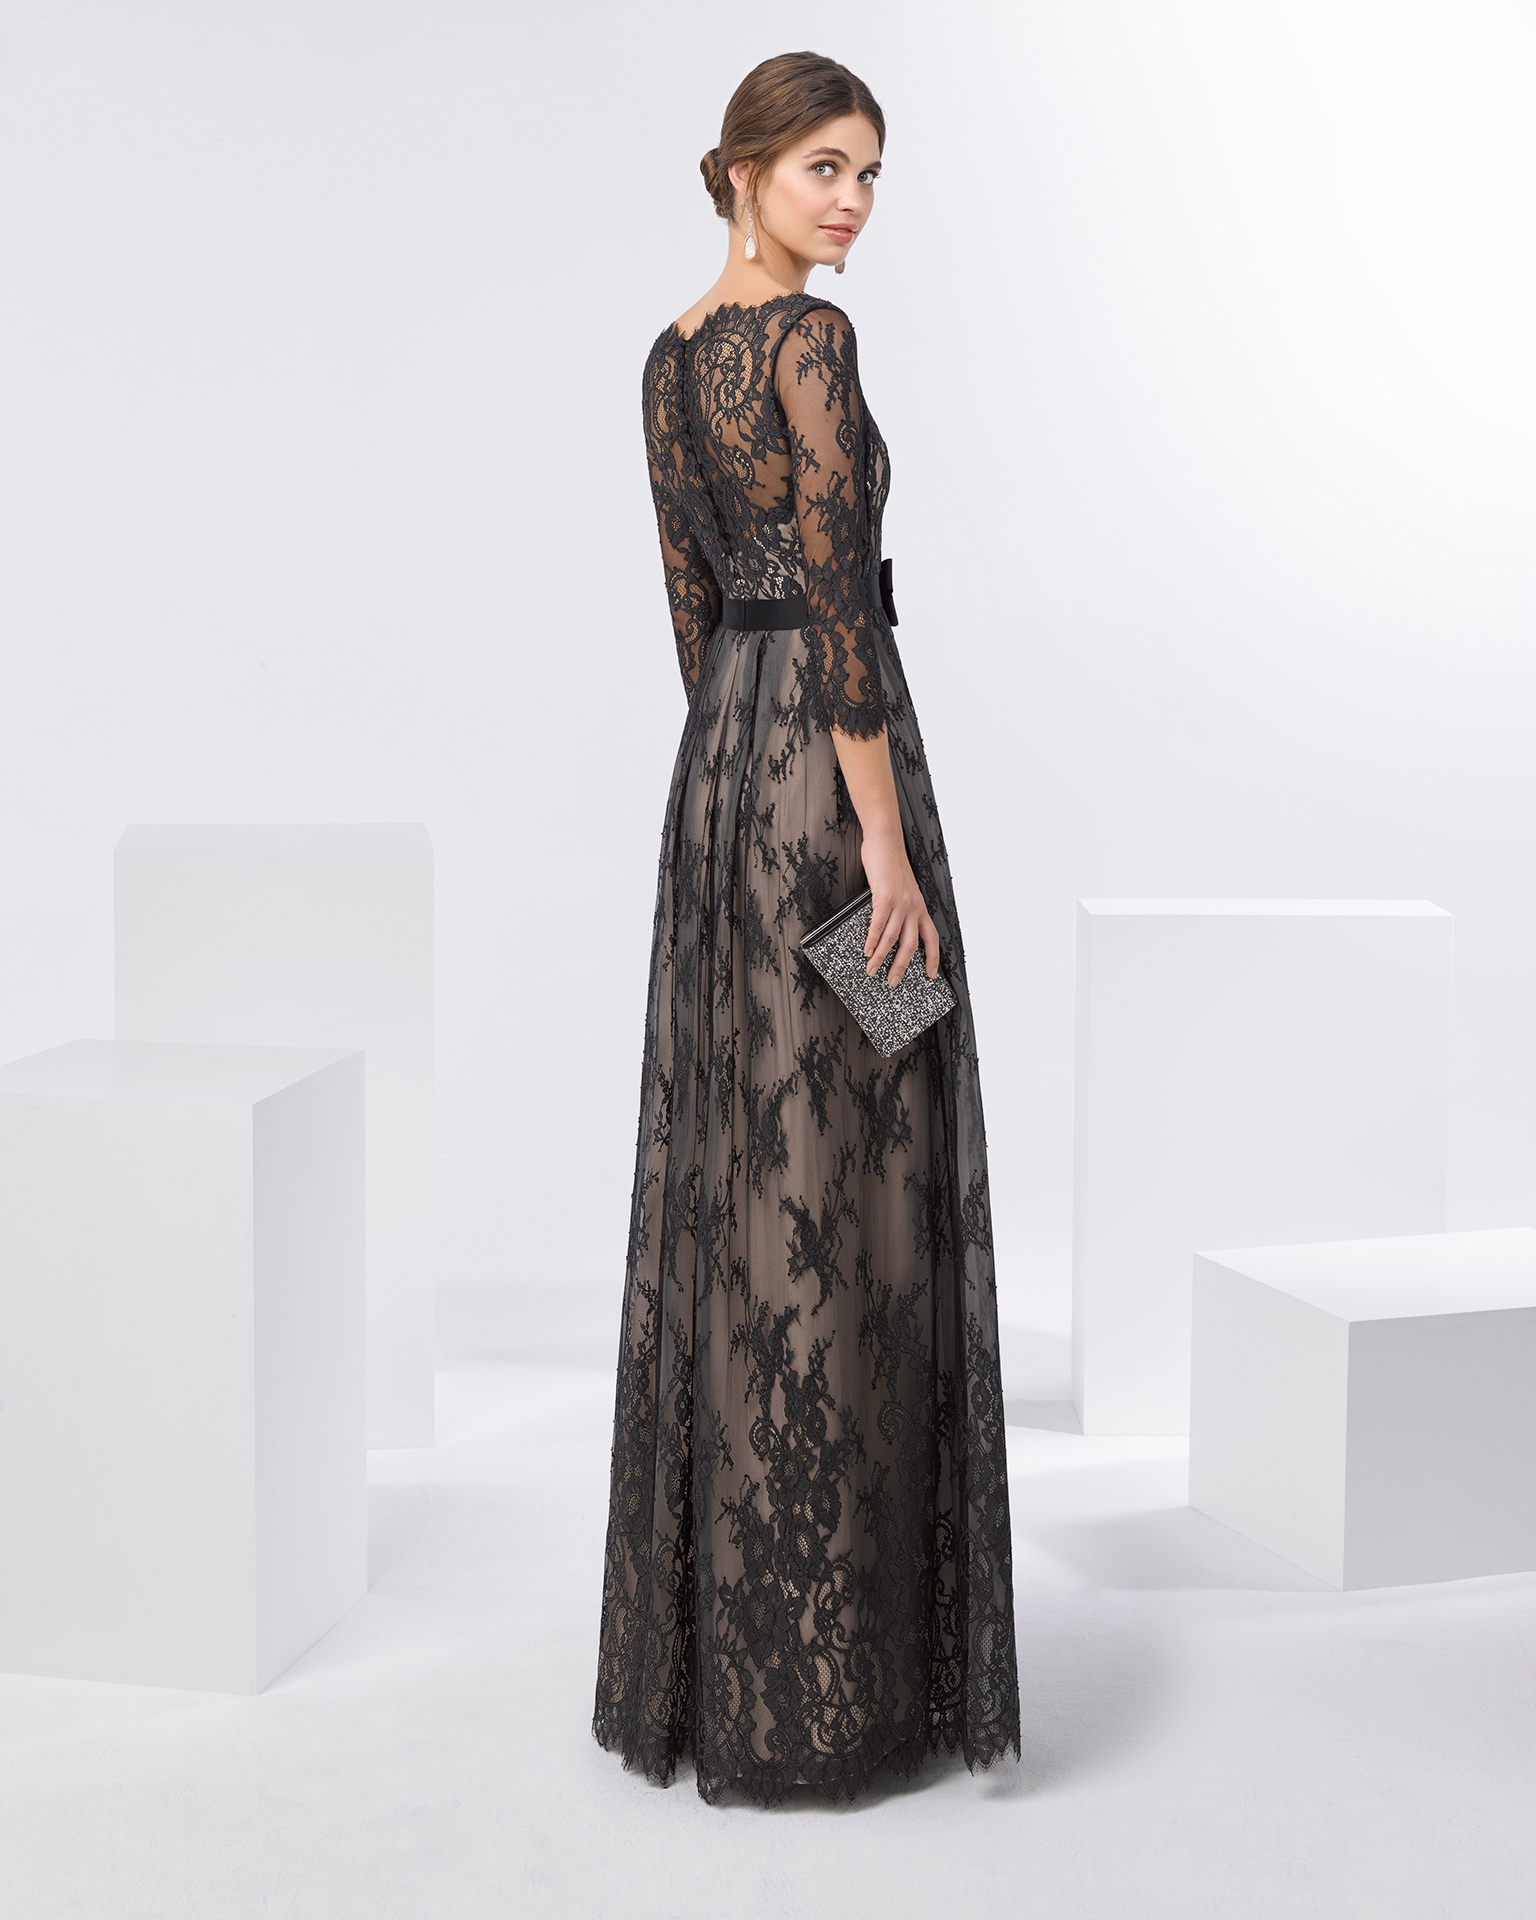 Long lace cocktail dress with bow on waist, V-neckline and three-quarter sleeves. Available in silver/nude, black/nude and navy blue/nude. 2018 FIESTA AIRE BARCELONA Collection.